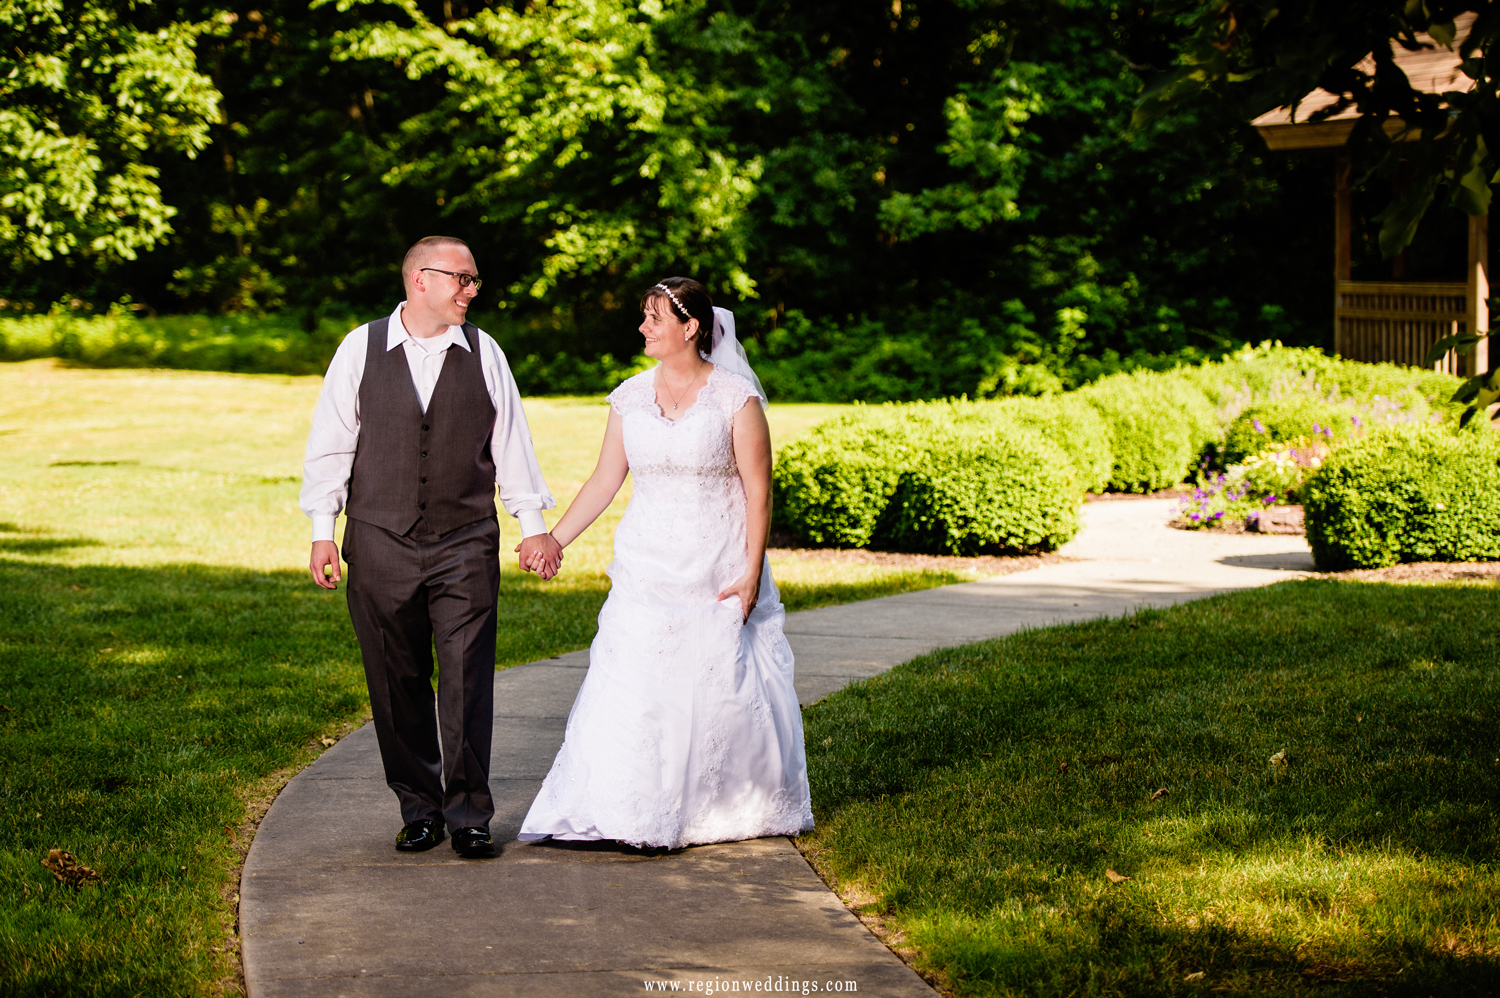 The bride and groom take a stroll in a Crown Point park with a gazebo in the background.